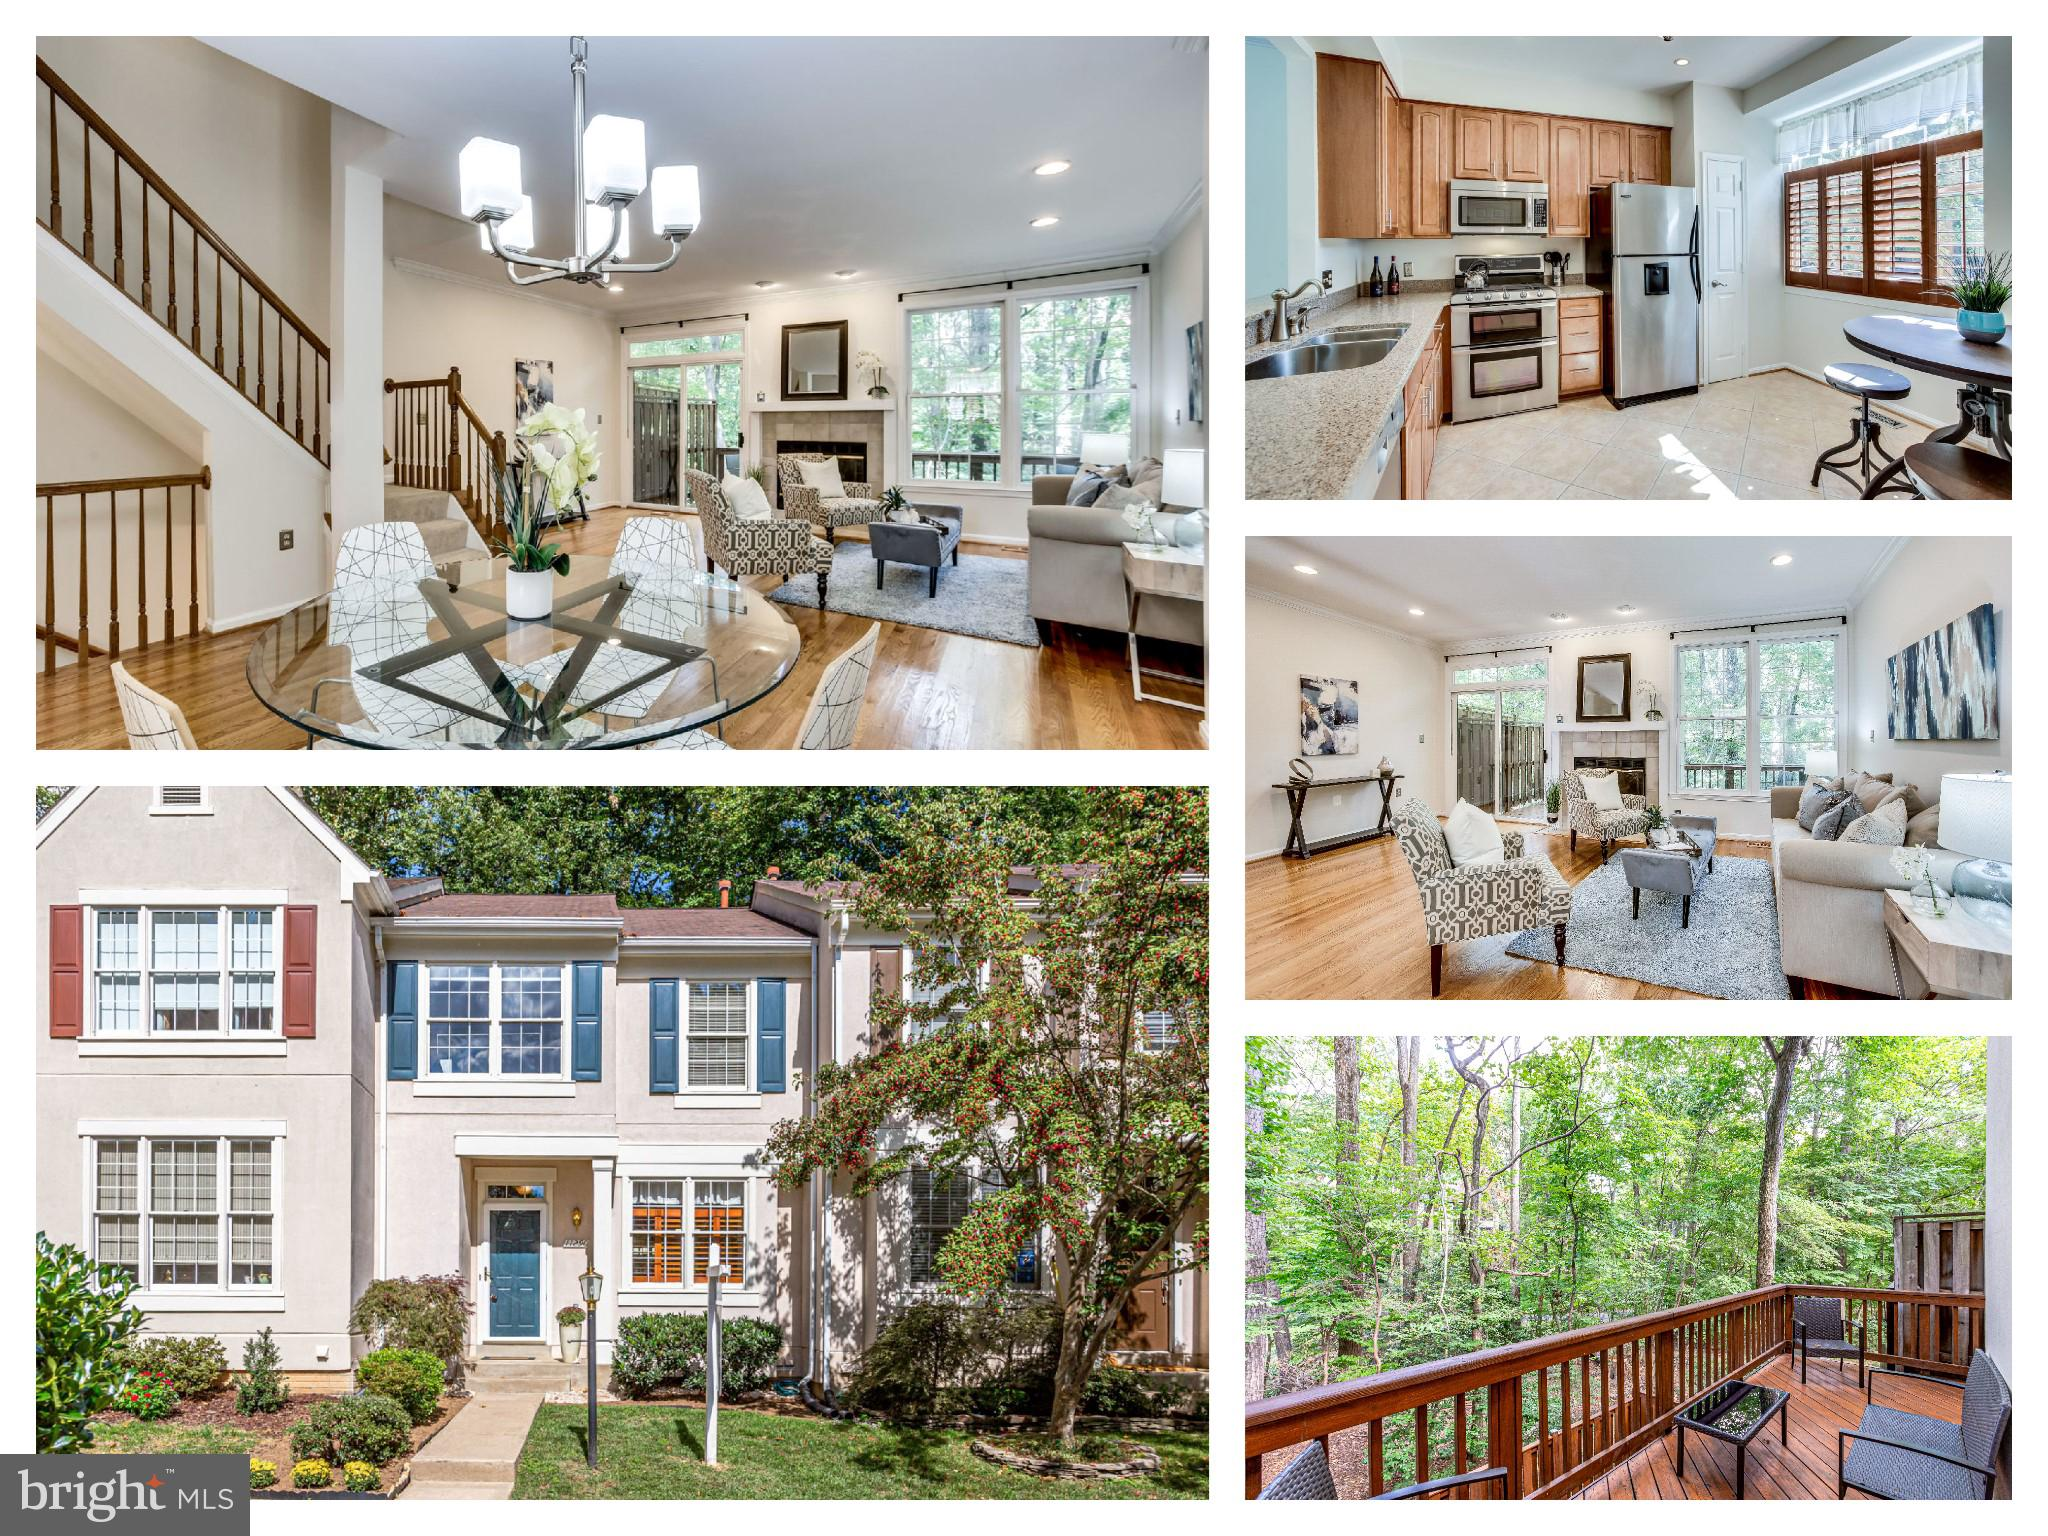 JUST LISTED!  **Open 2-4 PM Sun 9/22** Turn-Key 3 Lvl Townhome w/ Tree View!  Quiet, Wooded & Peaceful Neighborhood - around the corner from Lake Anne.  Open Kit w/ SS appliances, quartz counters and pantry.  Dining rm flows to large living space w/ gas fp. Enjoy coffee on the deck looking at trees and nature. Convenient 1/2 bath on main. 3 beds, 2 baths up. Master features walk-in closet and ensuite w/ dual pedestal sinks, soaking tub and separate shower.  Large walkout rec room in basement that leads to fully fenced patio.  Location has best of  both worlds:  seclusion w/ convenience. Enjoy the shops, restaurants and farmer's market at Lake Anne Plaza or RTC. Great commuter location plus Silver Line Metro nearby.